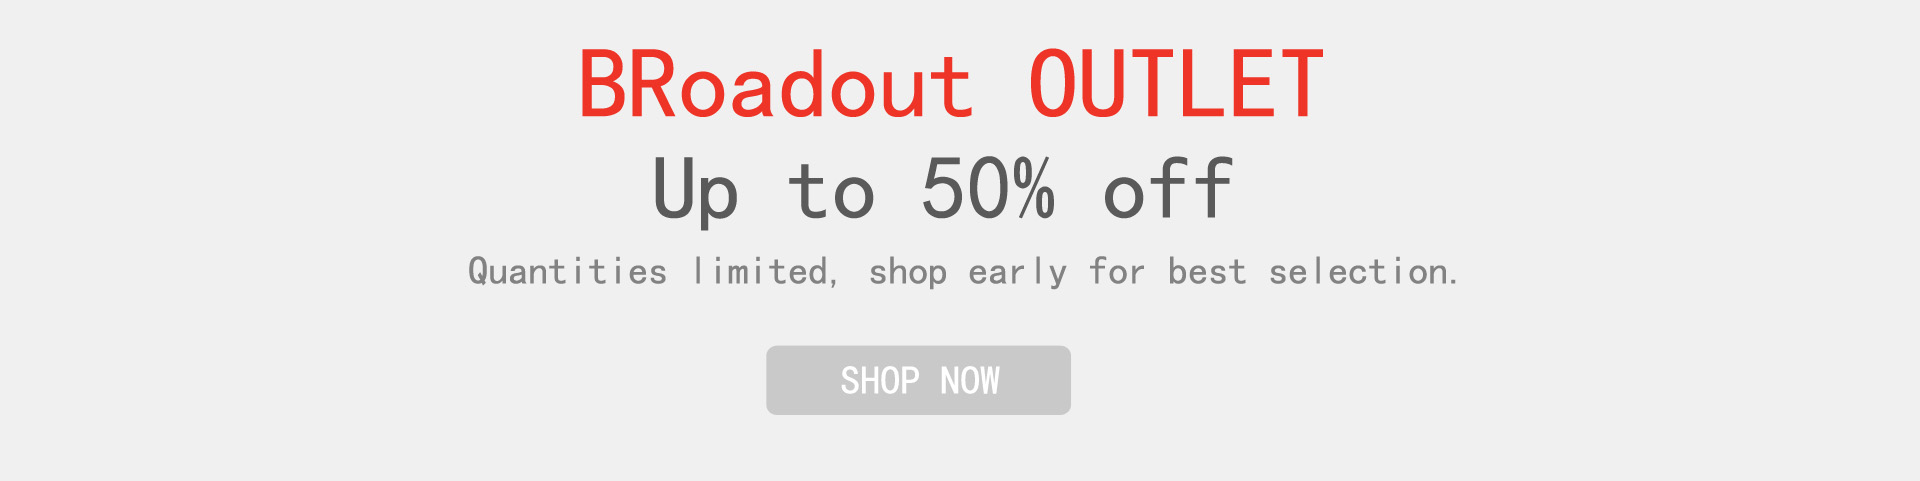 broadout outlet